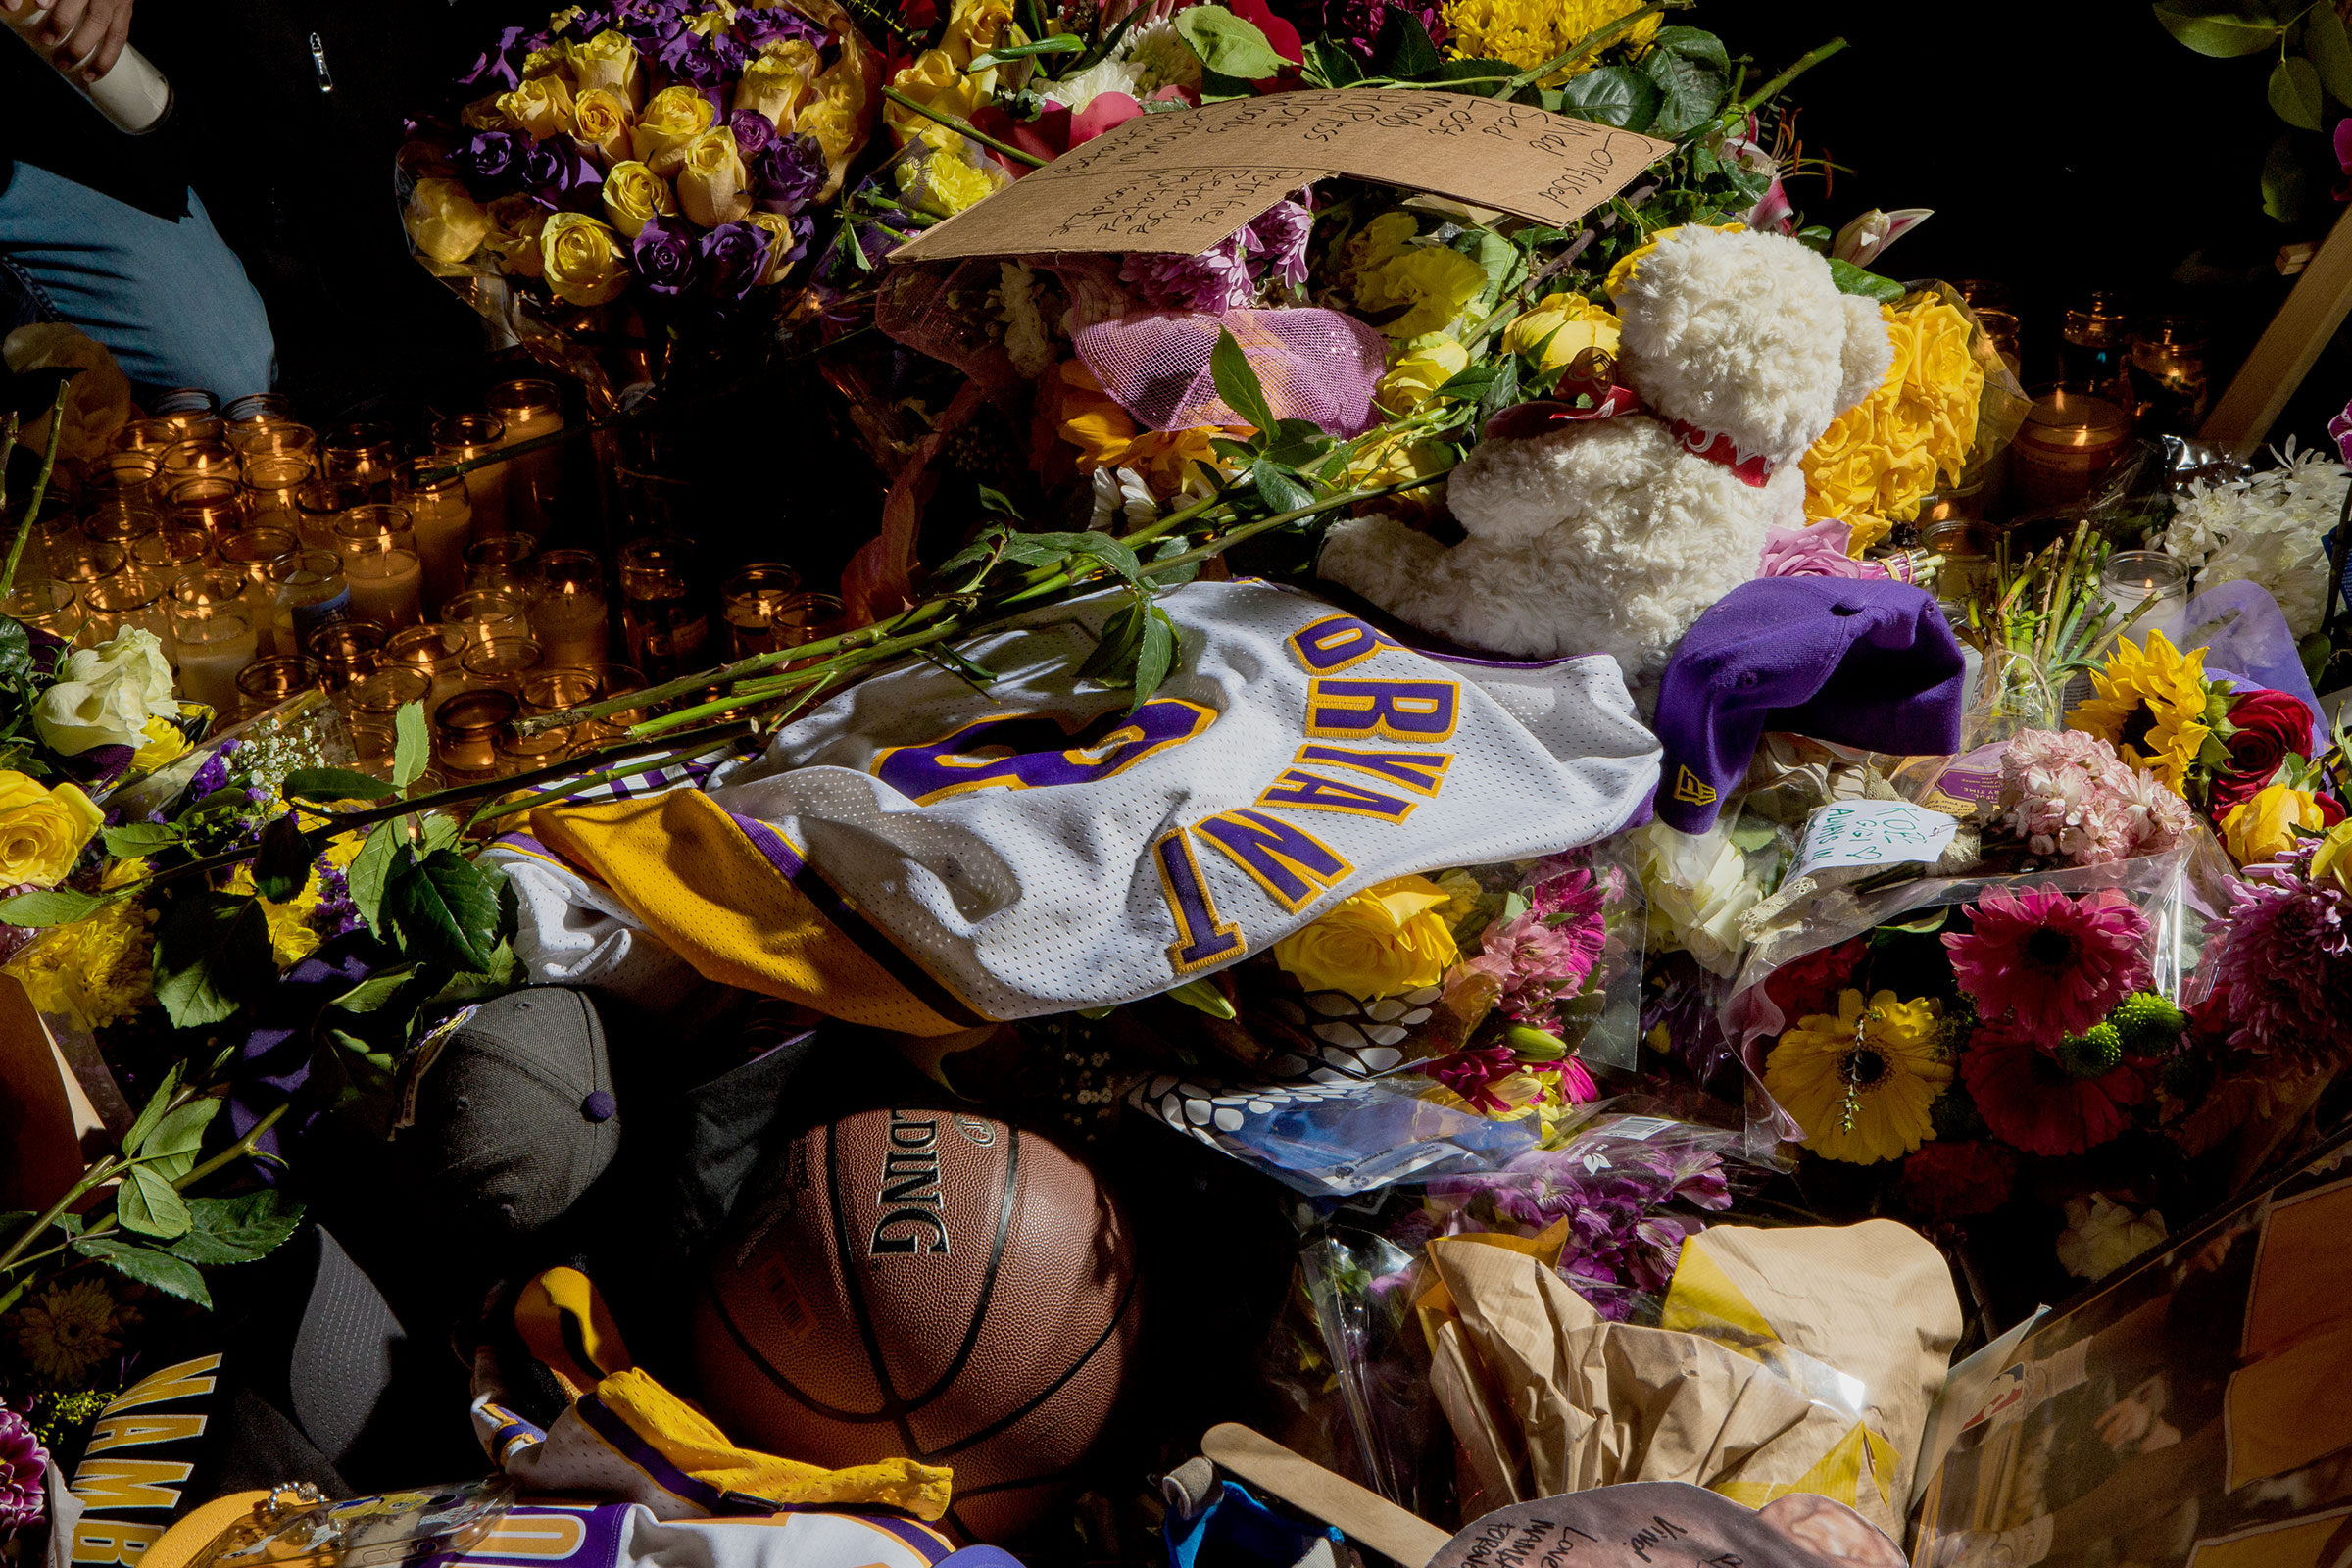 Hundreds of fans gathered near Staples Center in Los Angeles to mourn the death of Kobe Bryant, who died in a January helicopter crash in Calabasas, along with eight others, including his daughter Gianna, 13.